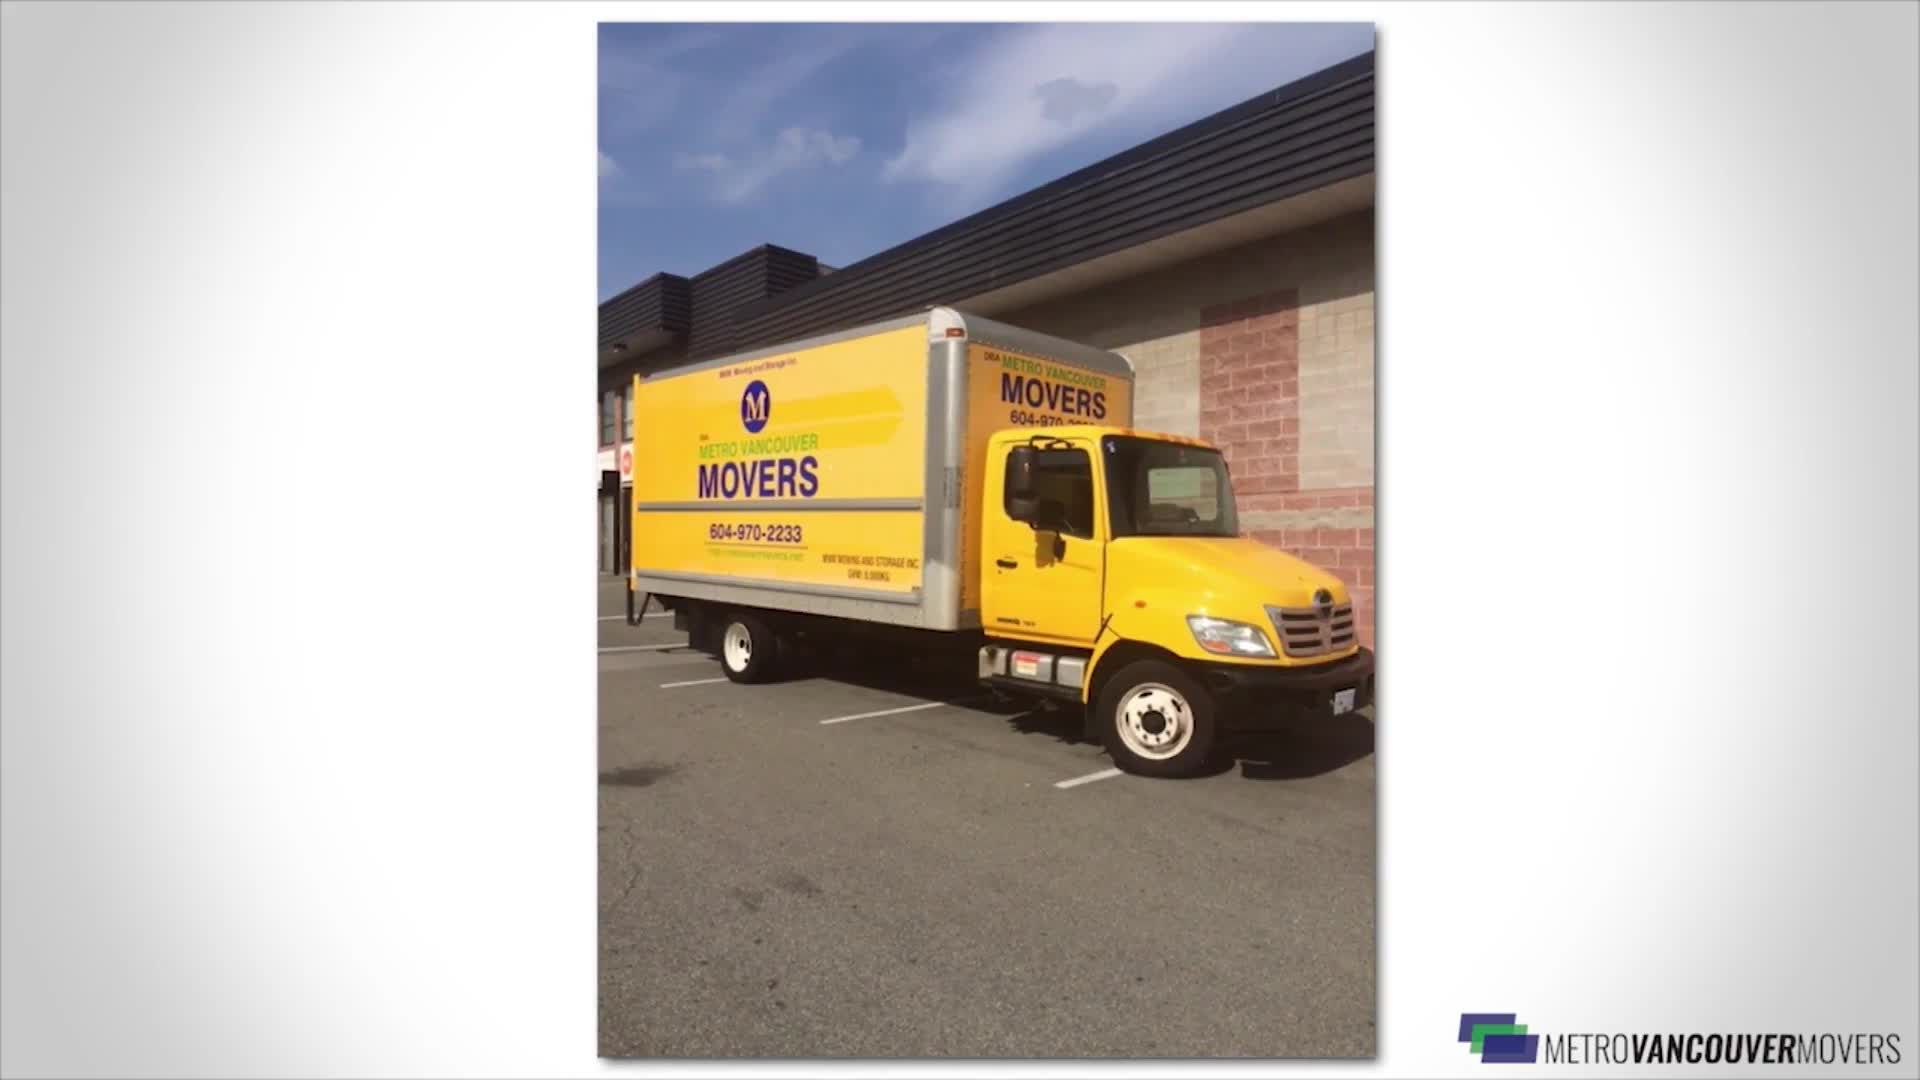 Metro Vancouver Movers - Moving Services & Storage Facilities - 604-970-2233